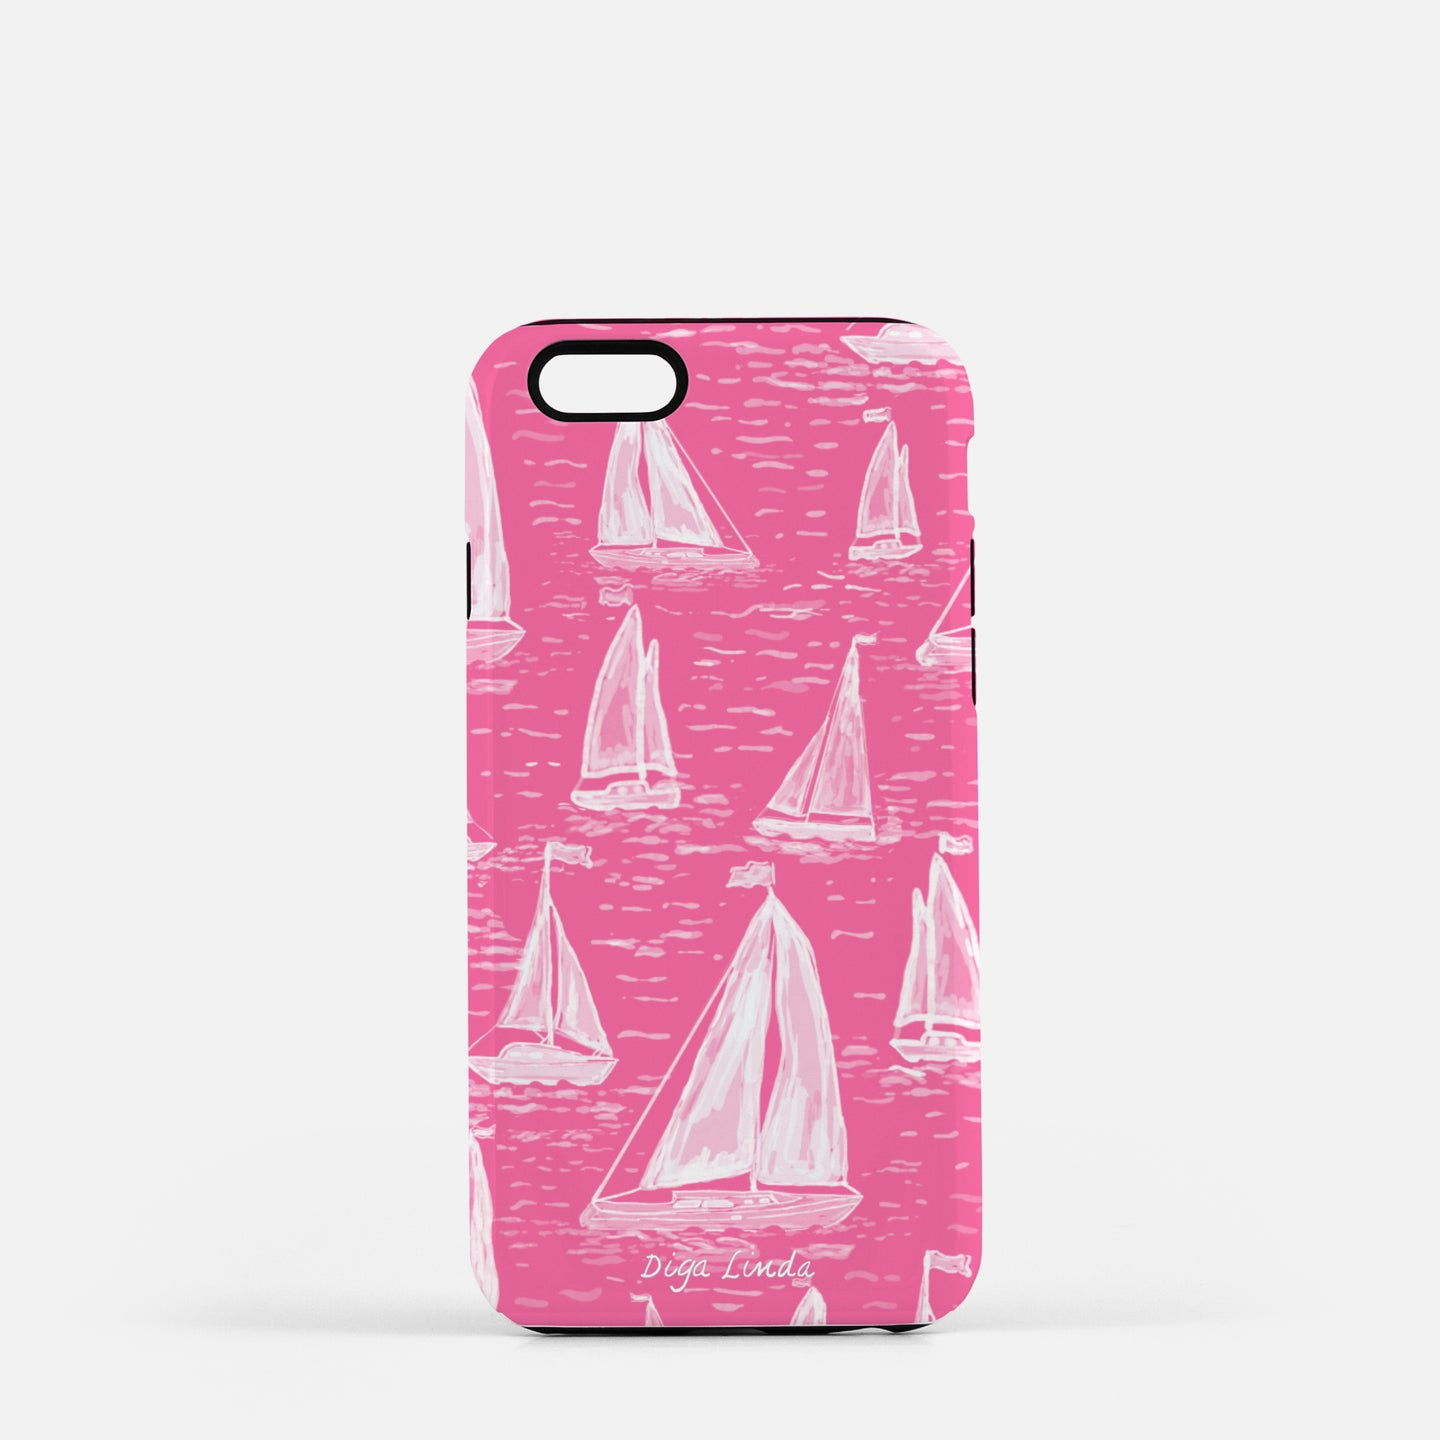 Tough Phone Case in The Happy Explorer Print - Diga Linda